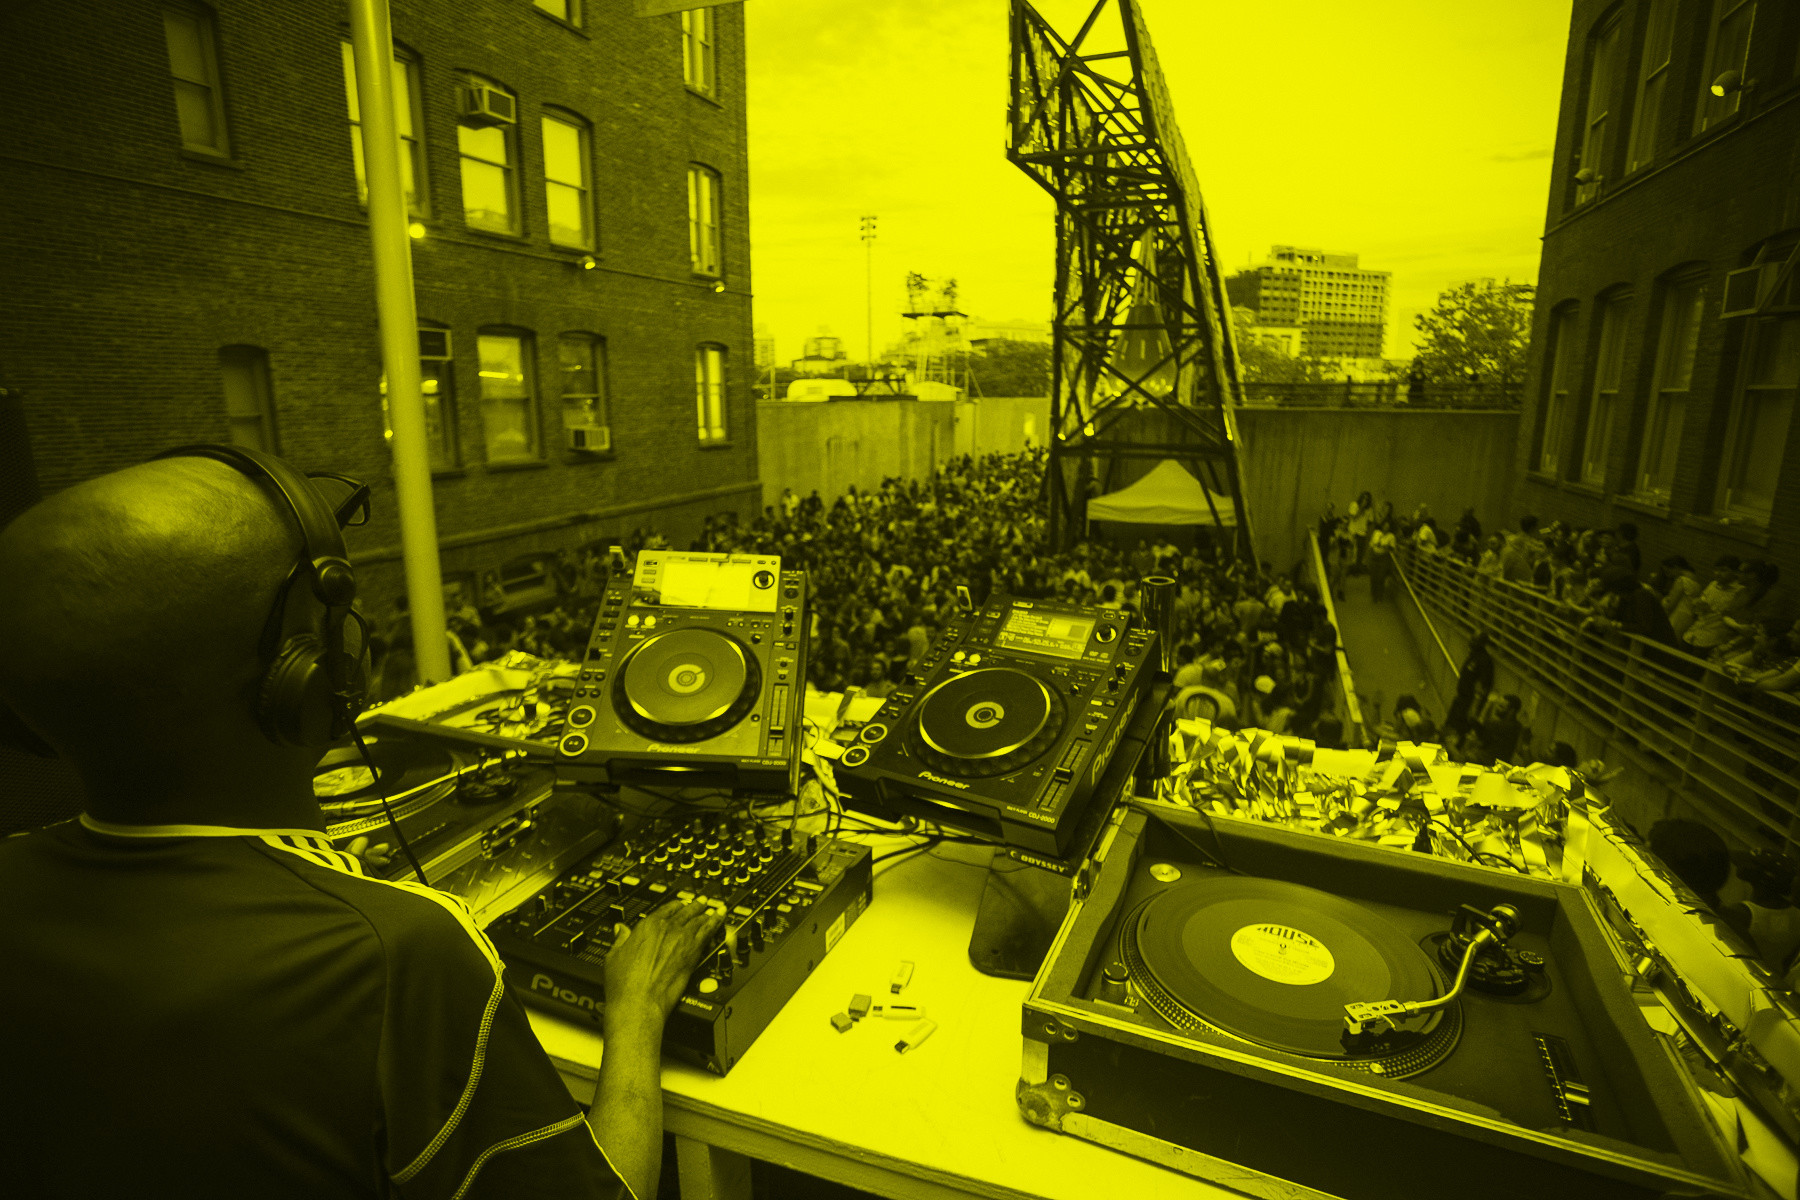 MoMA PS1's Warm Up 2013 featuring Juan Atkins. Image courtesy of MoMA PS1. Photo by Charles Roussel.